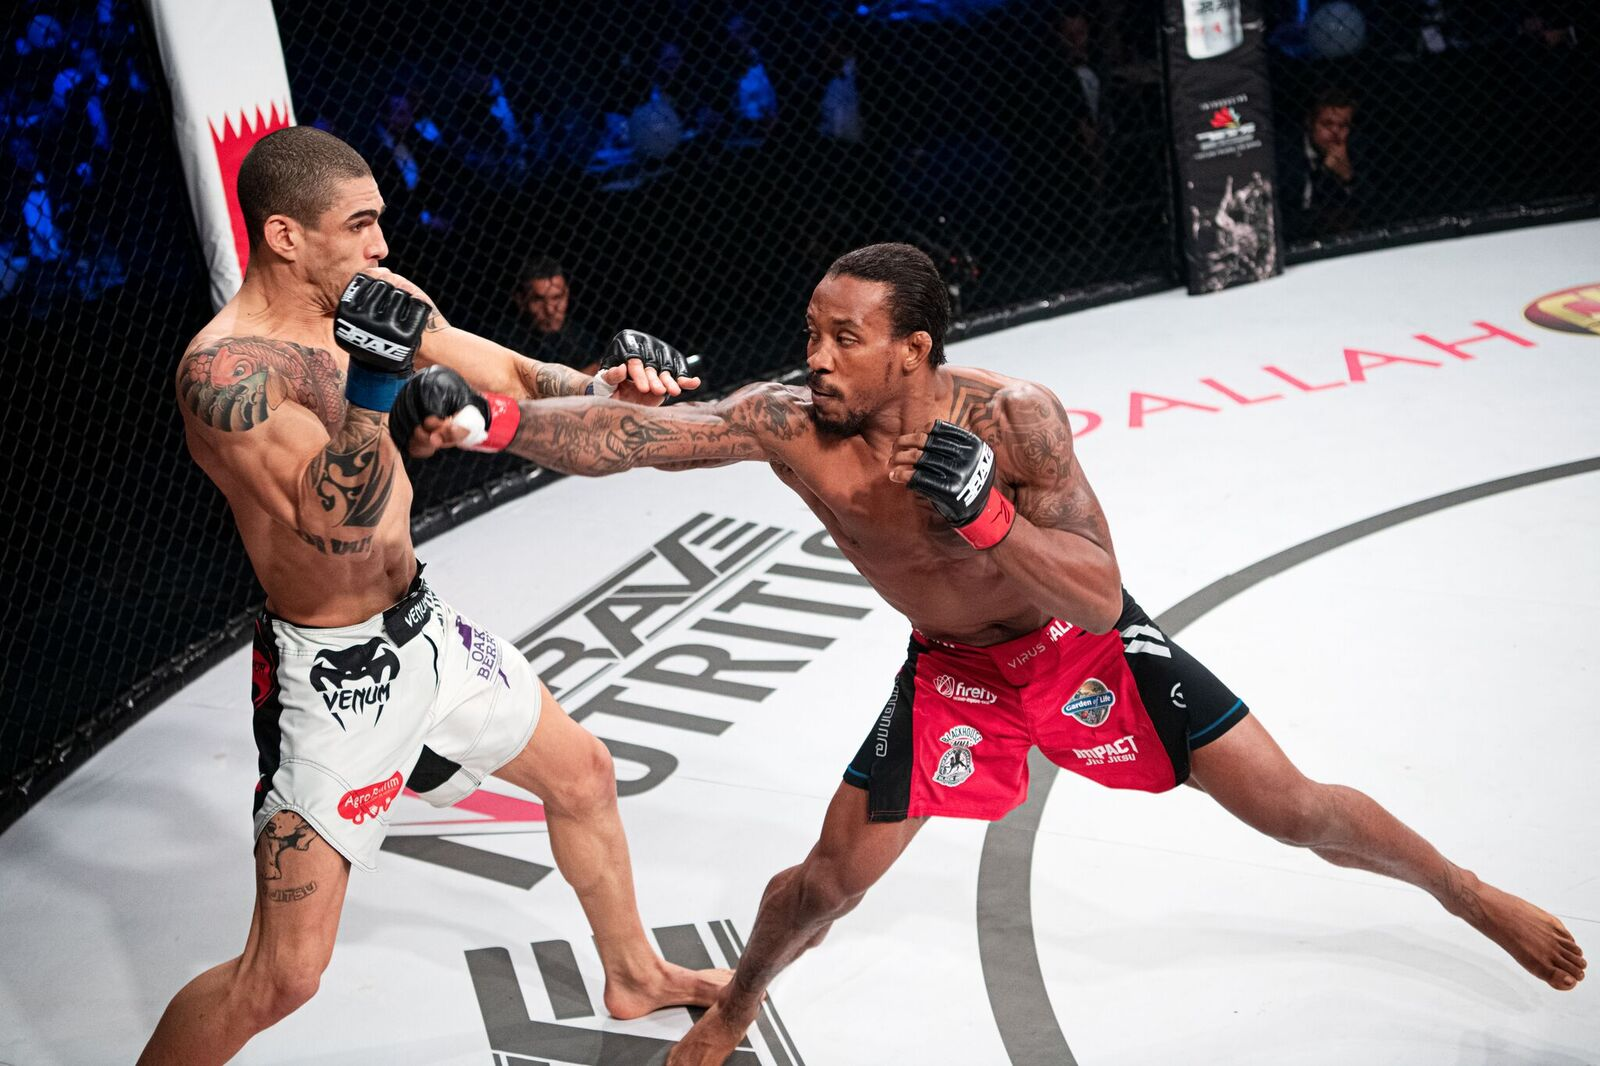 After landmark win at BRAVE 24, Jenkins ready to challenge other world champions -